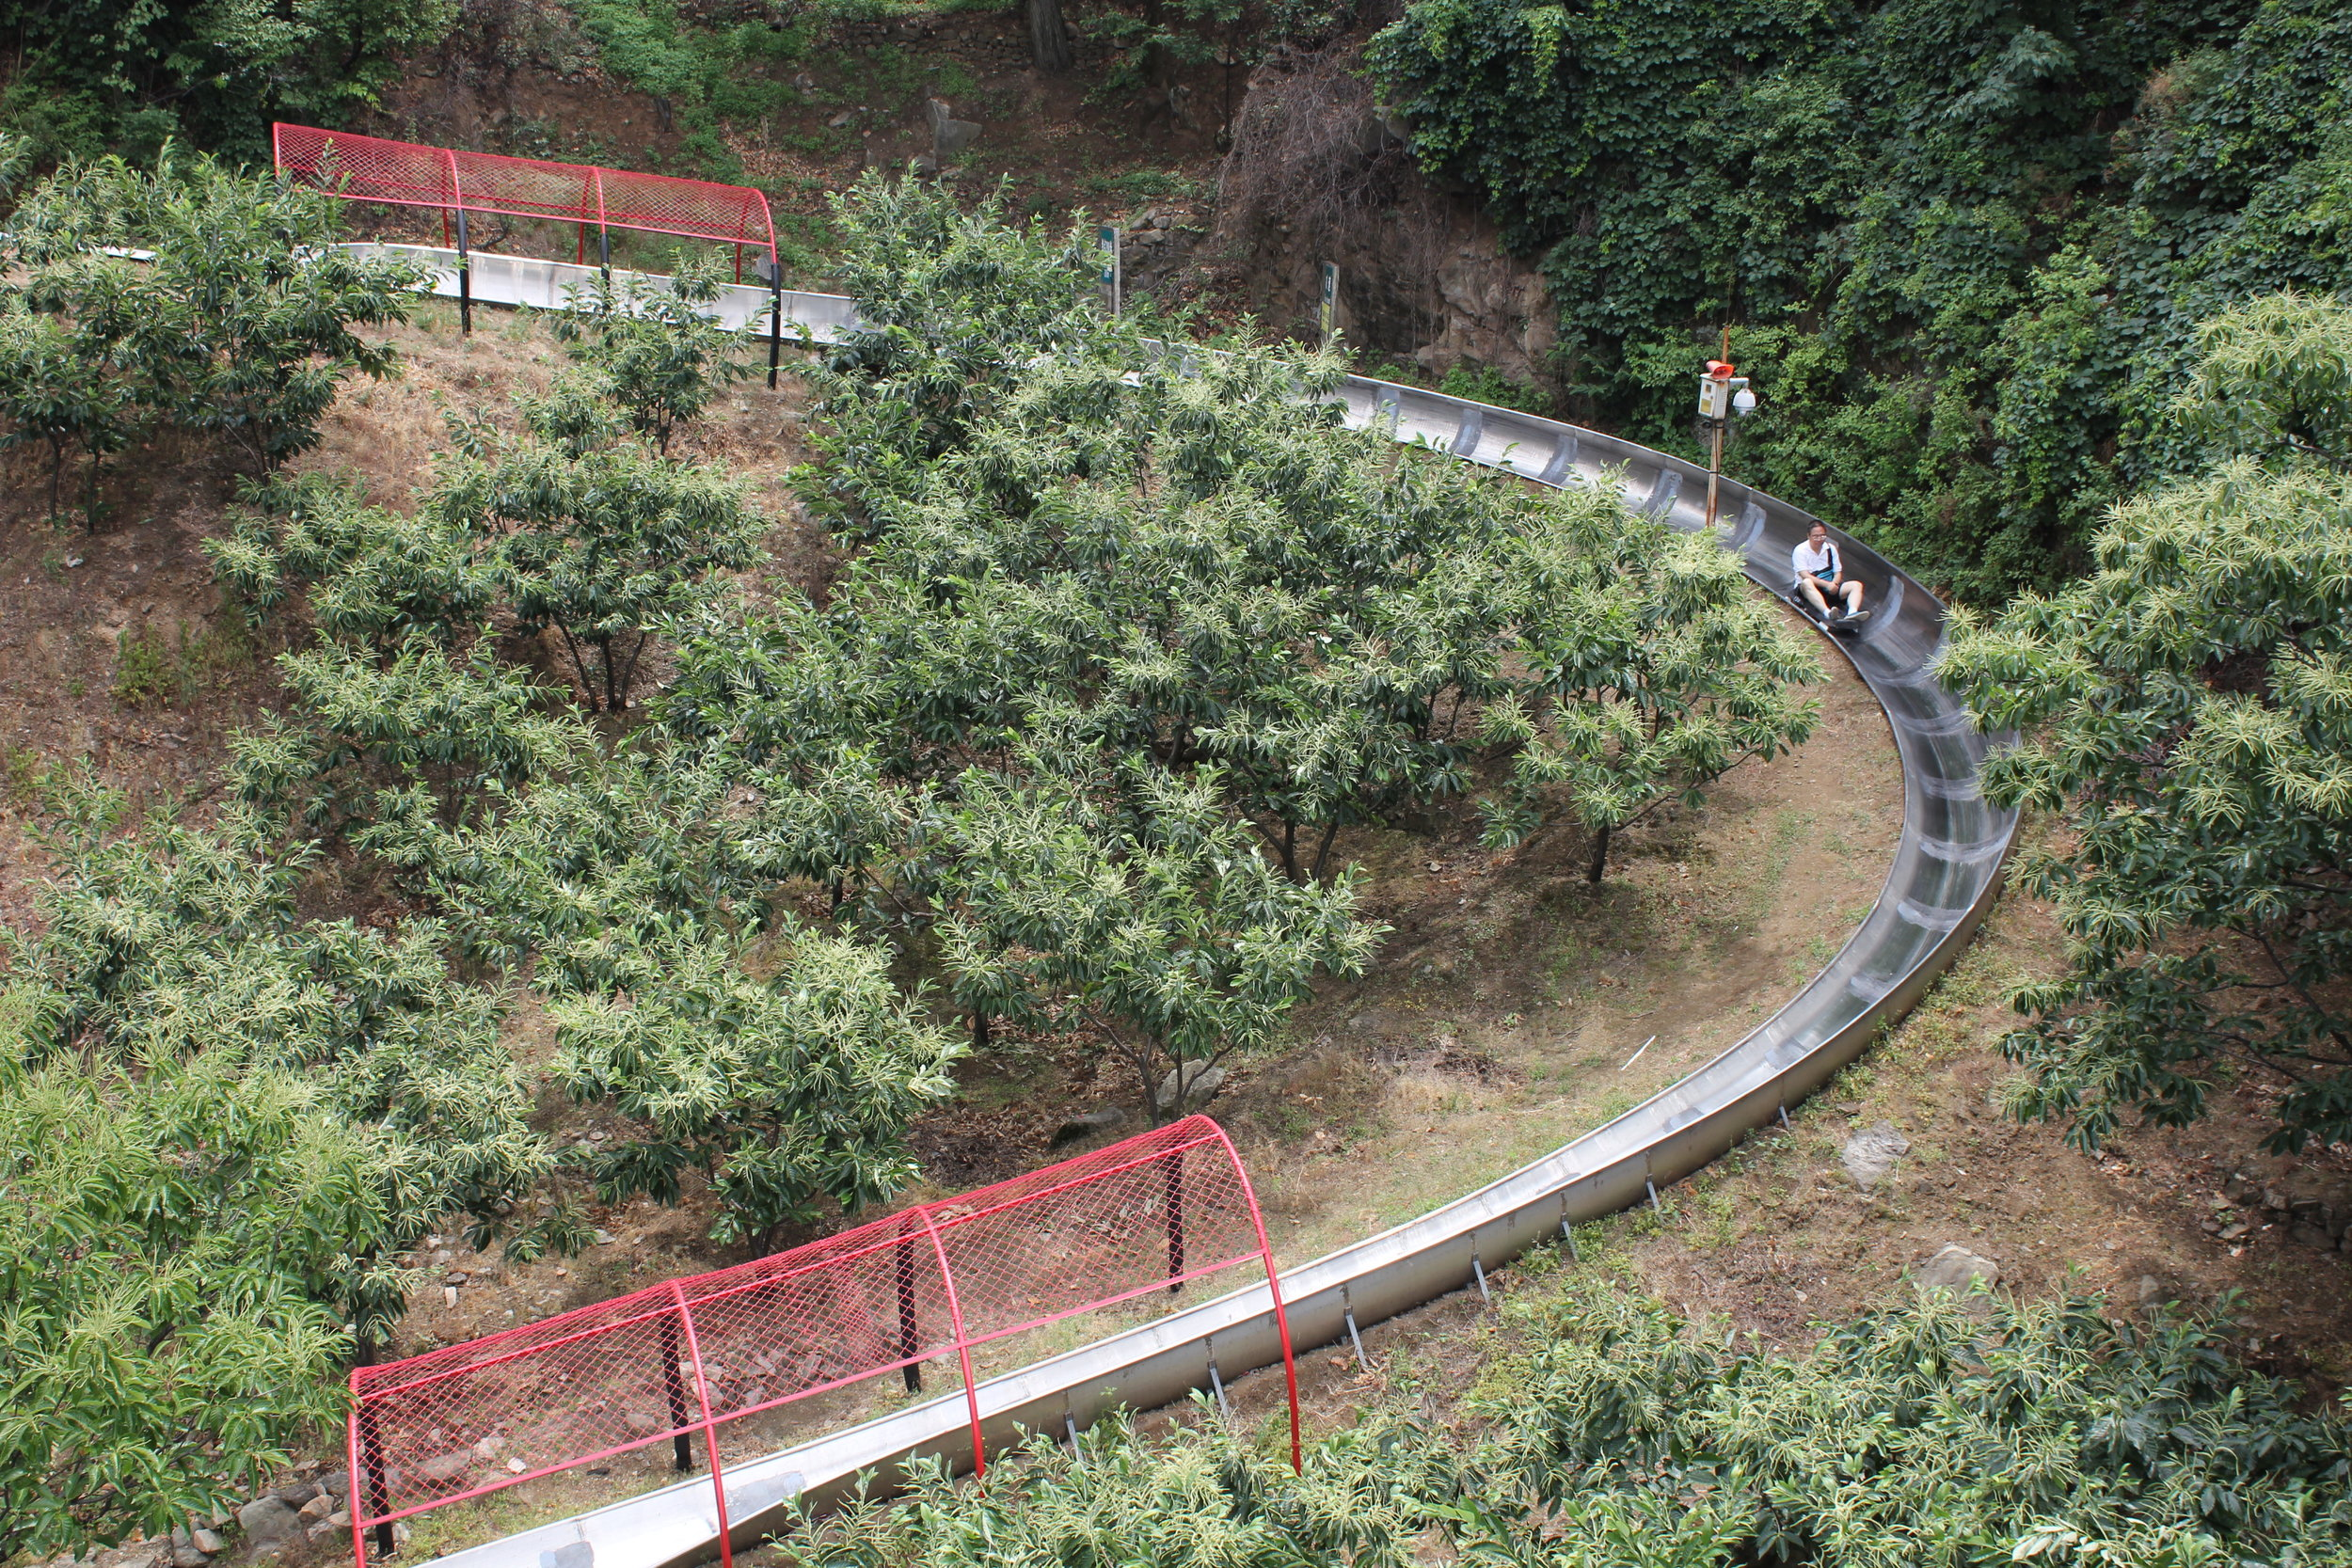 Mutianyu Great Wall – View of toboggan slide from chairlift